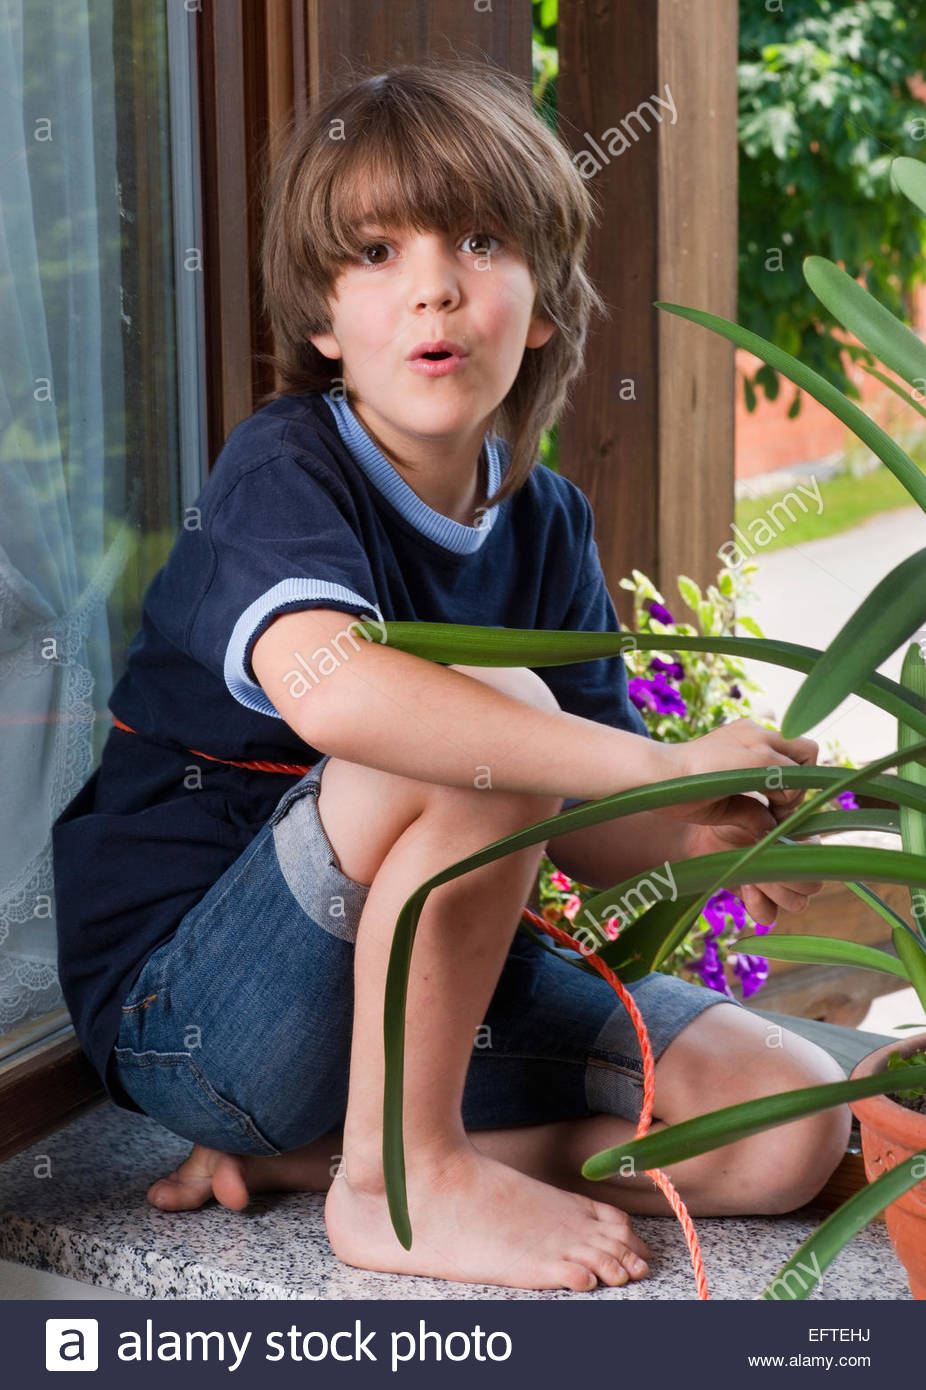 Seven Year Old Boy Child Age 7 Years Portrait Playing